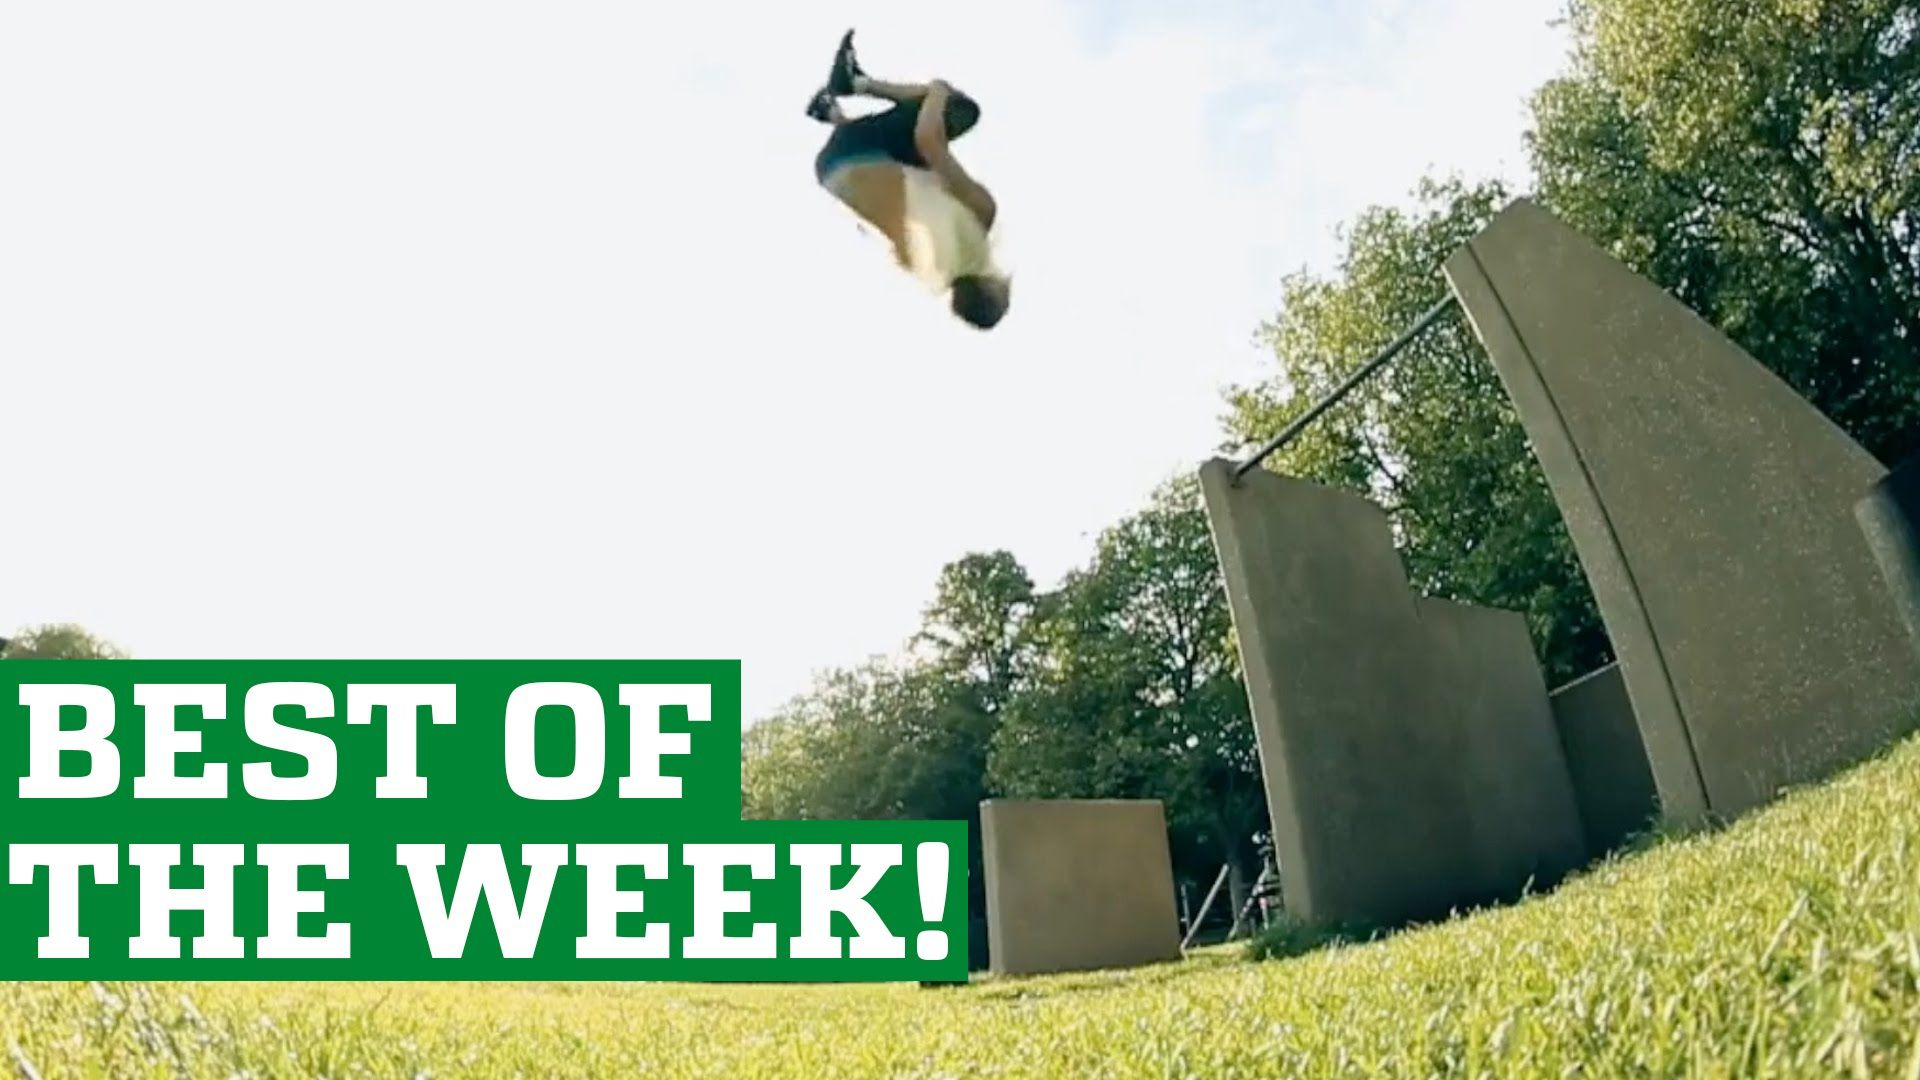 Here's the second in our new series of Best of the Week People are Awesome compilations! Yes we will now be doing weekly compilations of awesome people, as w...